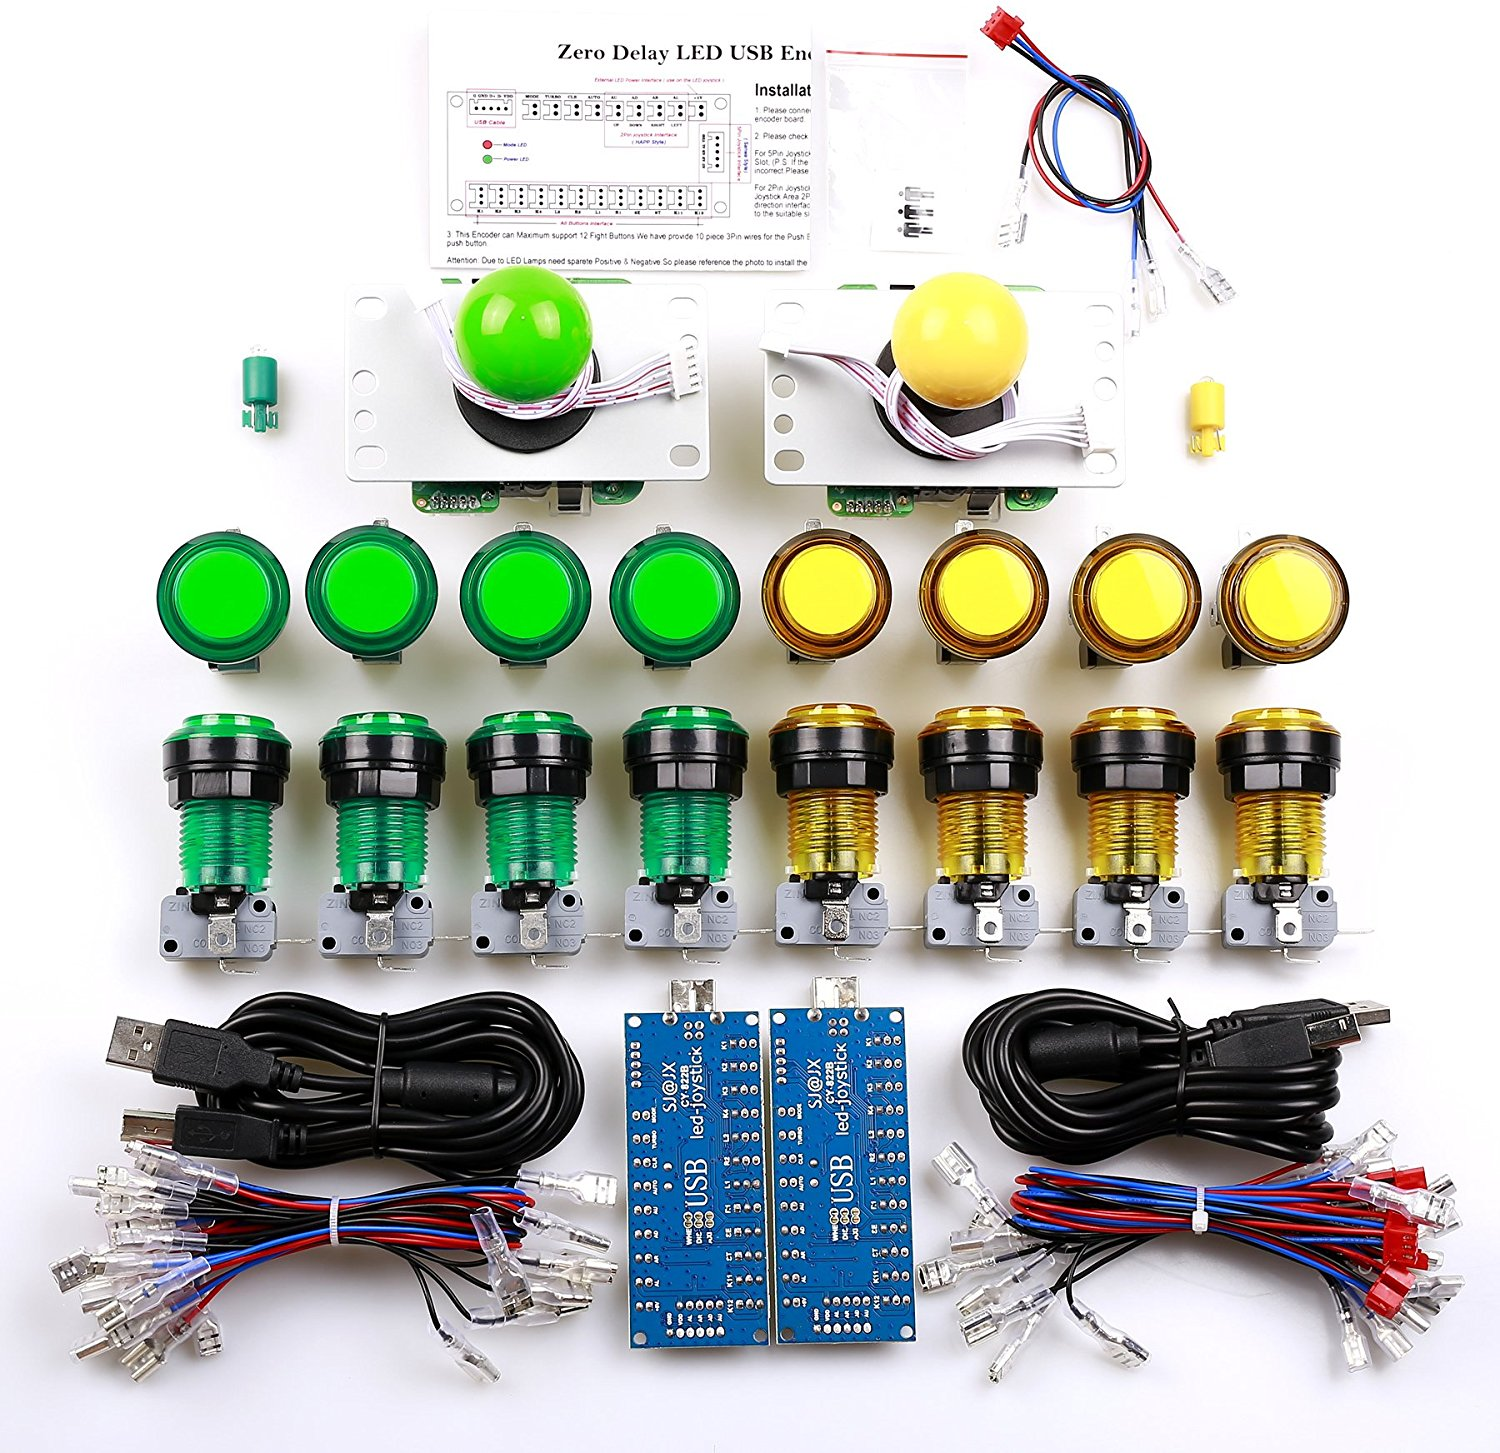 JAMMA 2P Player LED Button With Microswitch for MAME Easyget